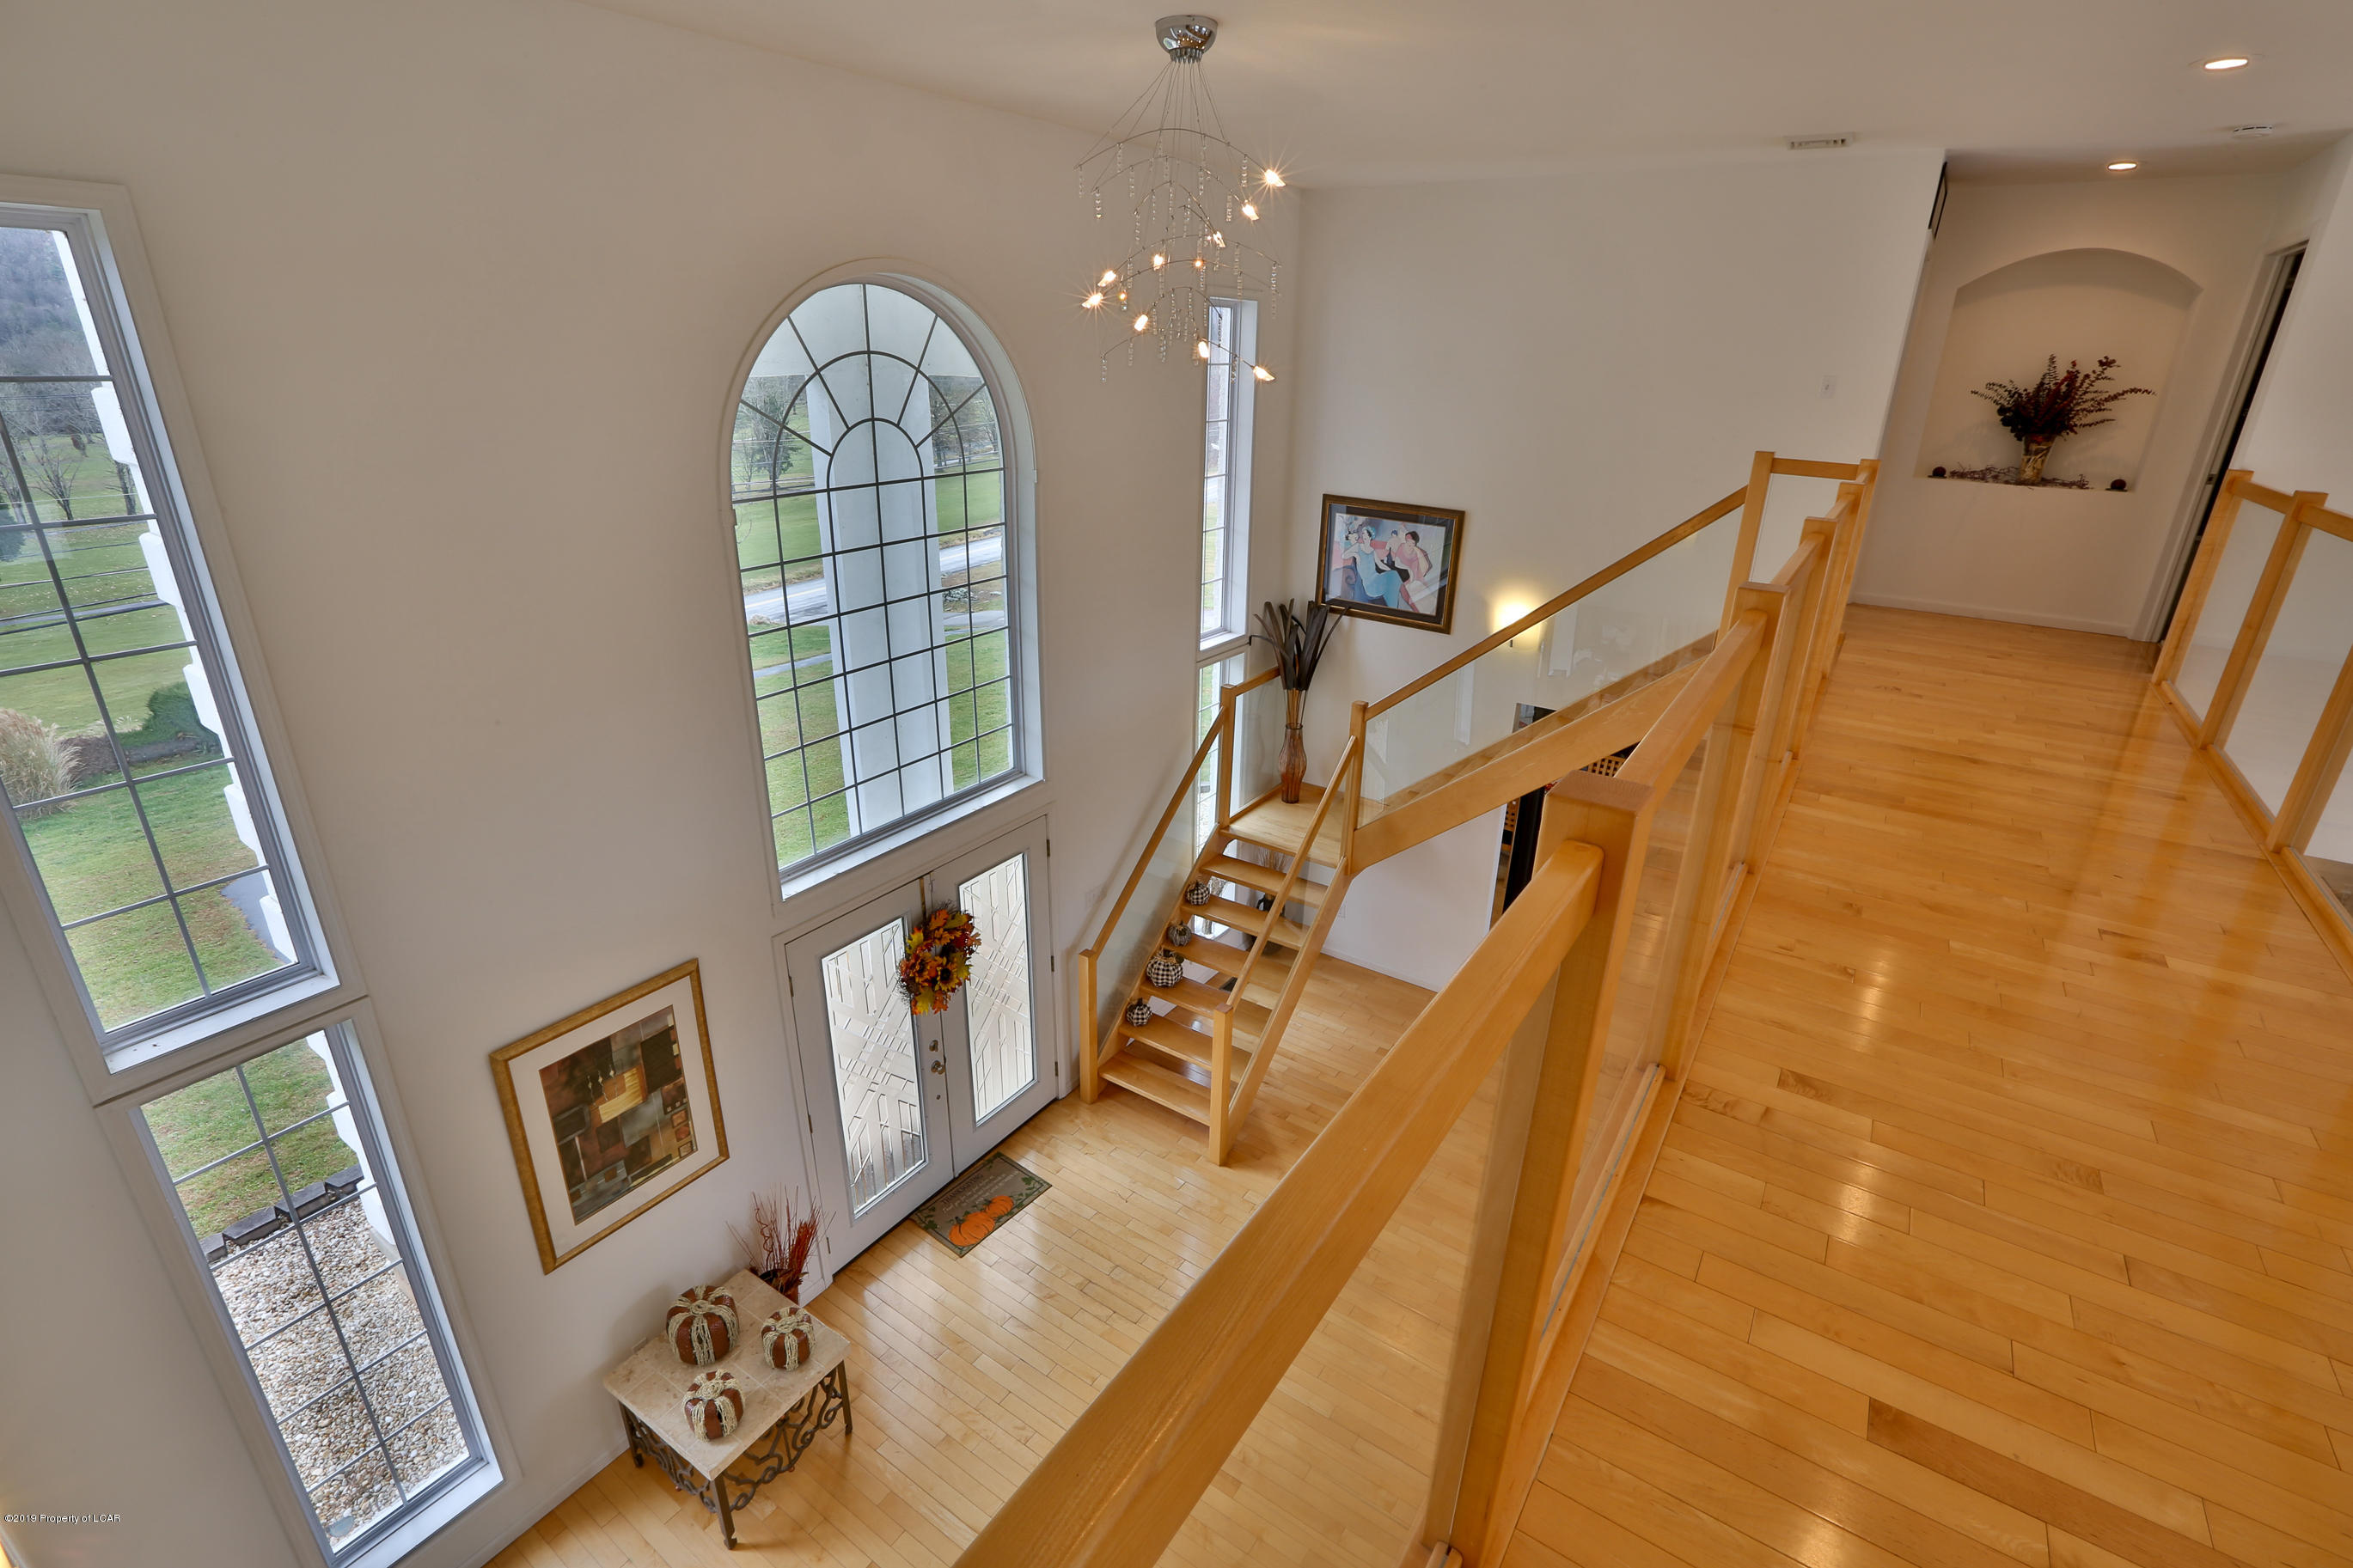 View of Foyer from above